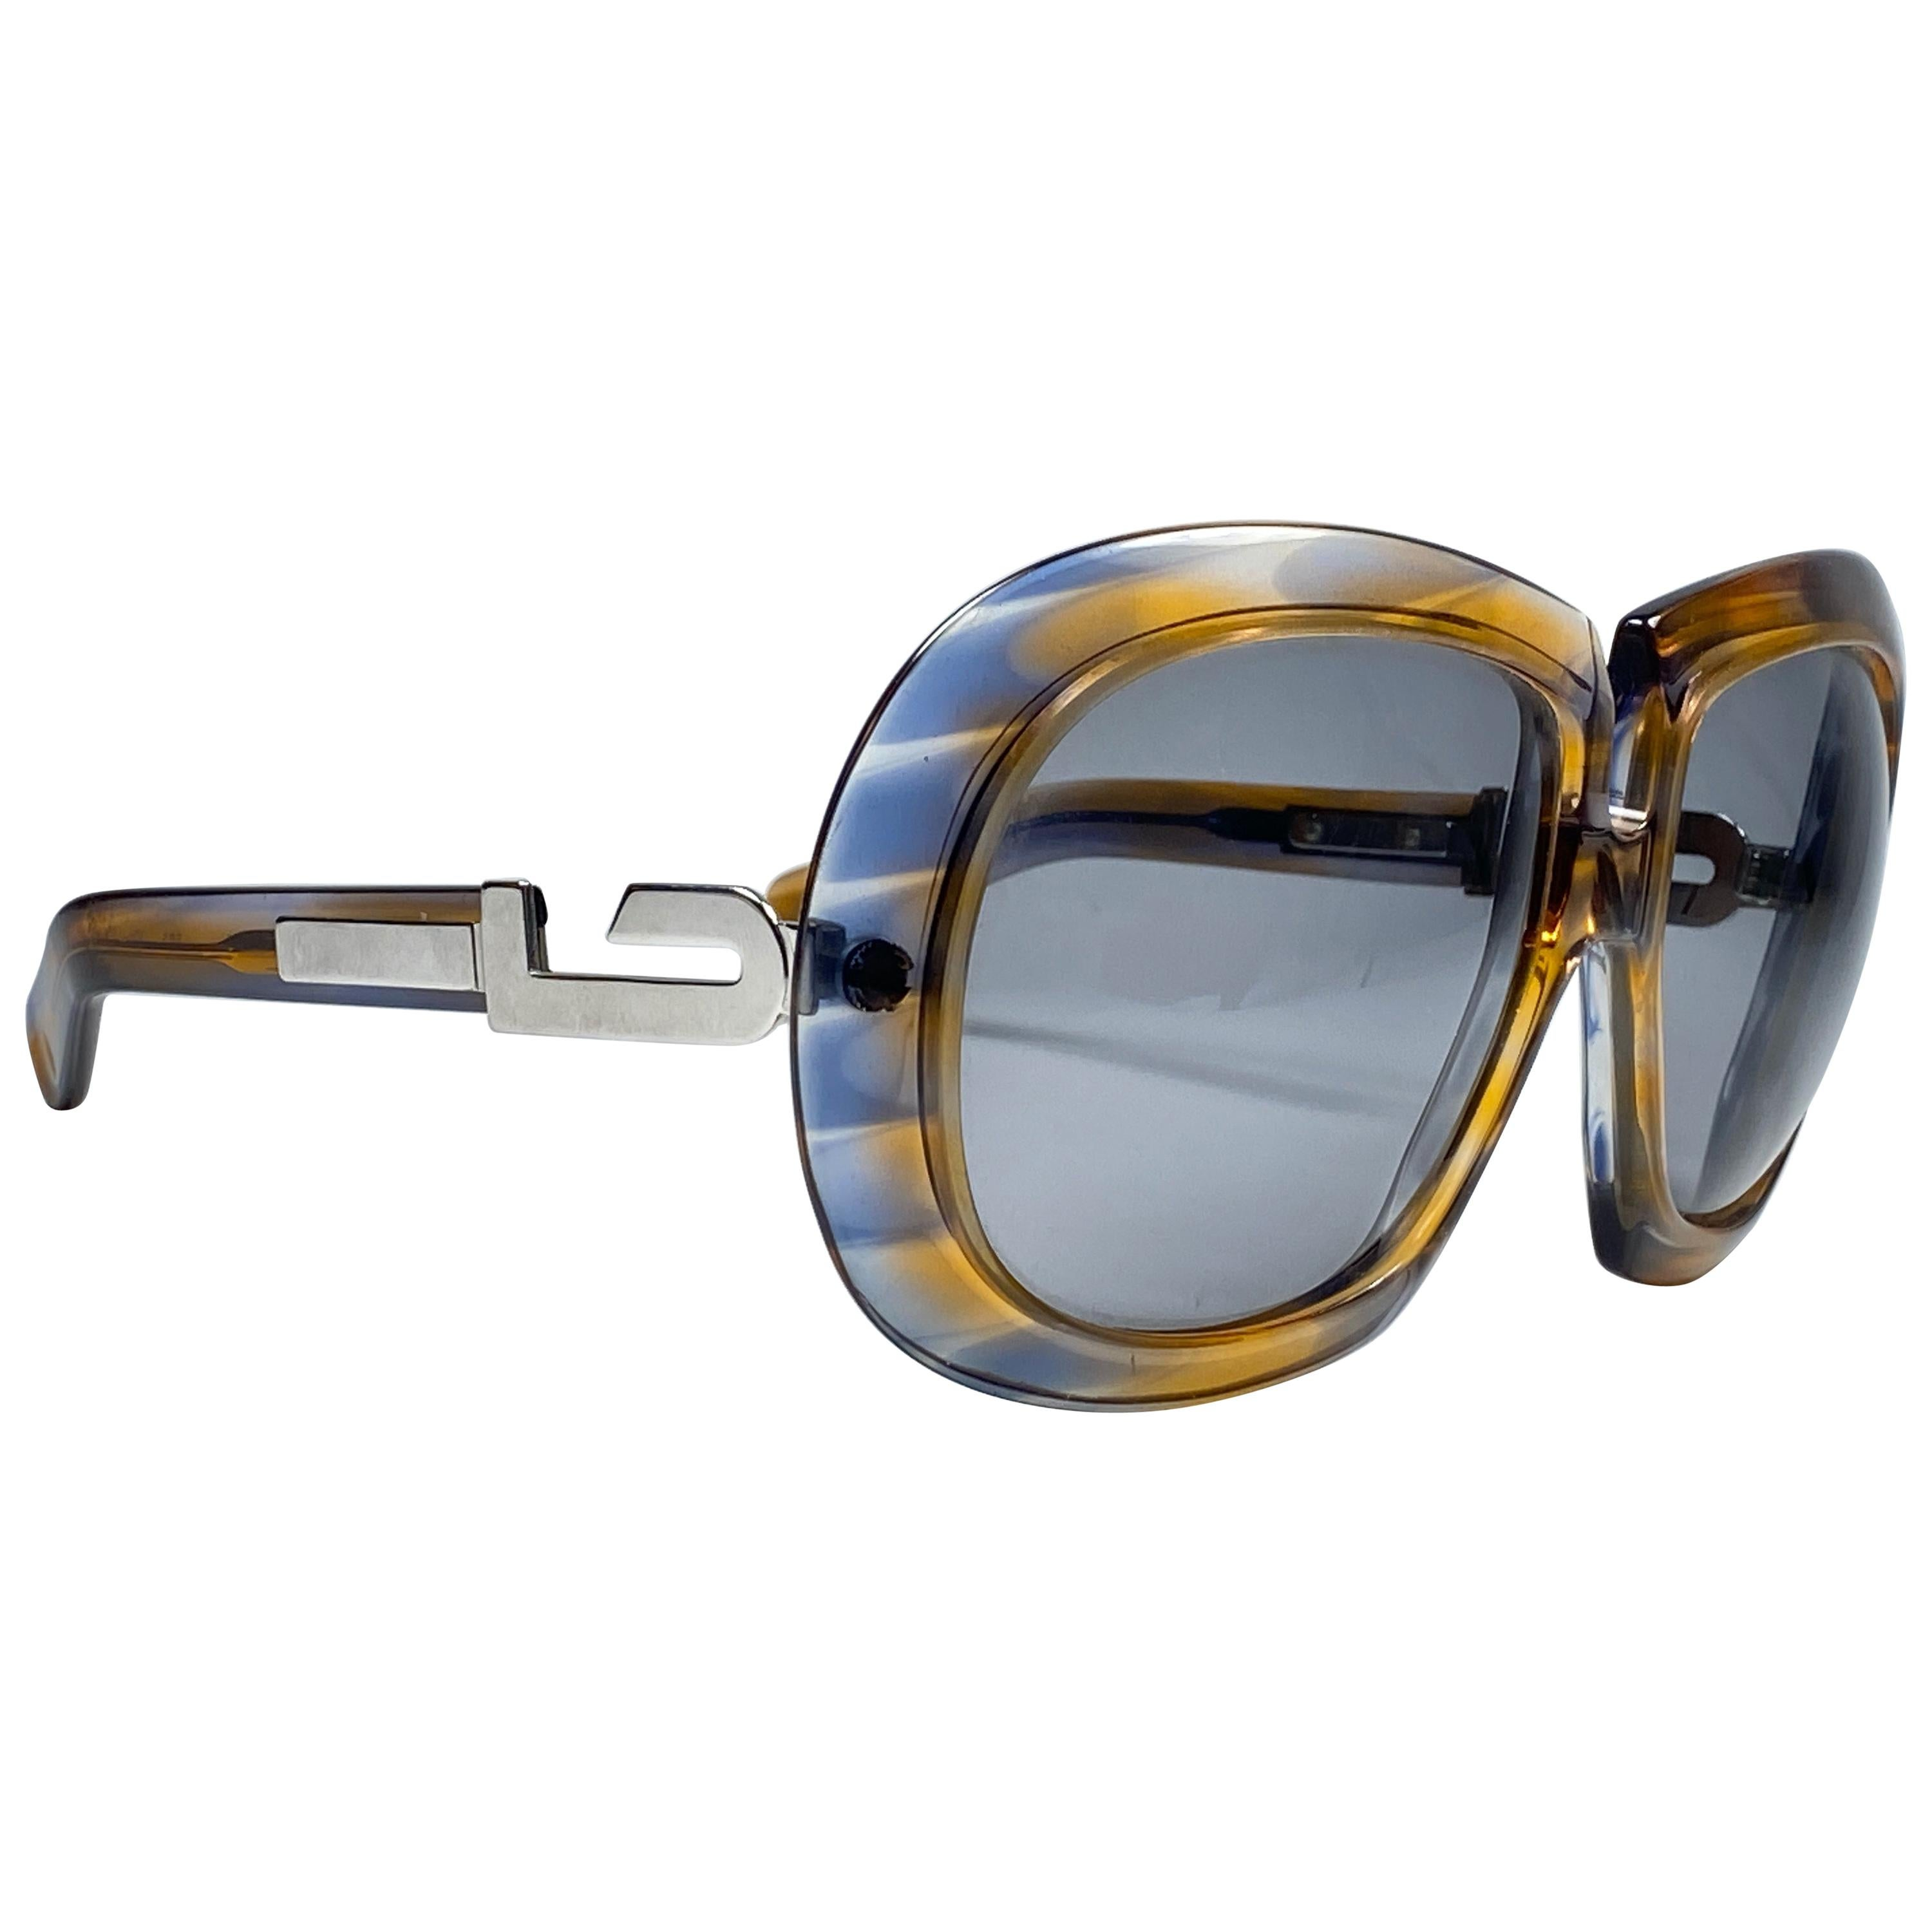 New Vintage Silhouette 559 Clear Oversized Silver Funk Germany 1970 Sunglasses